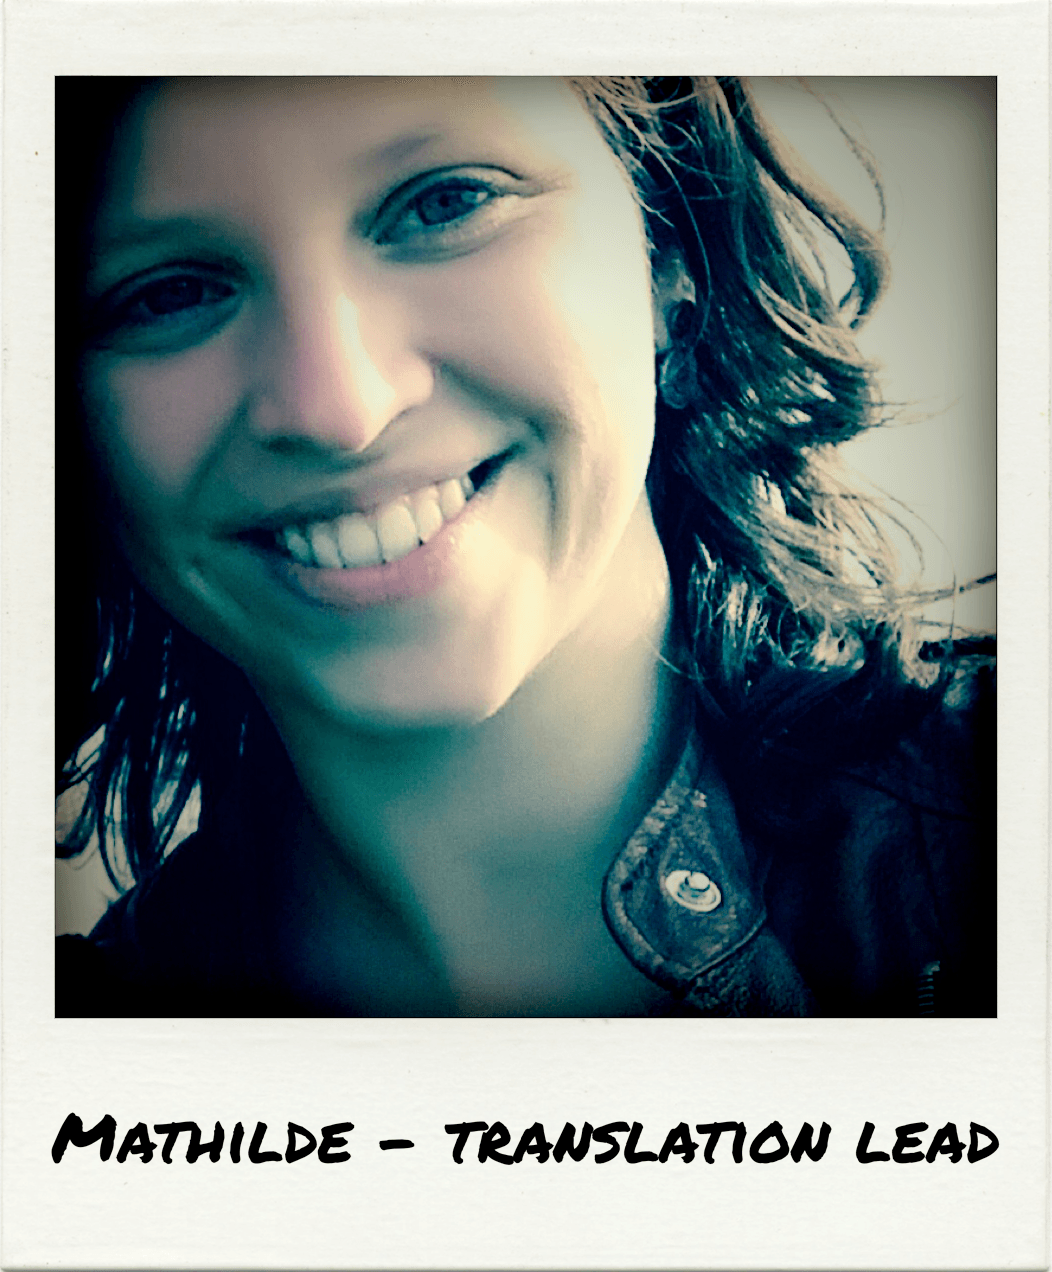 Mathilde Language Insight